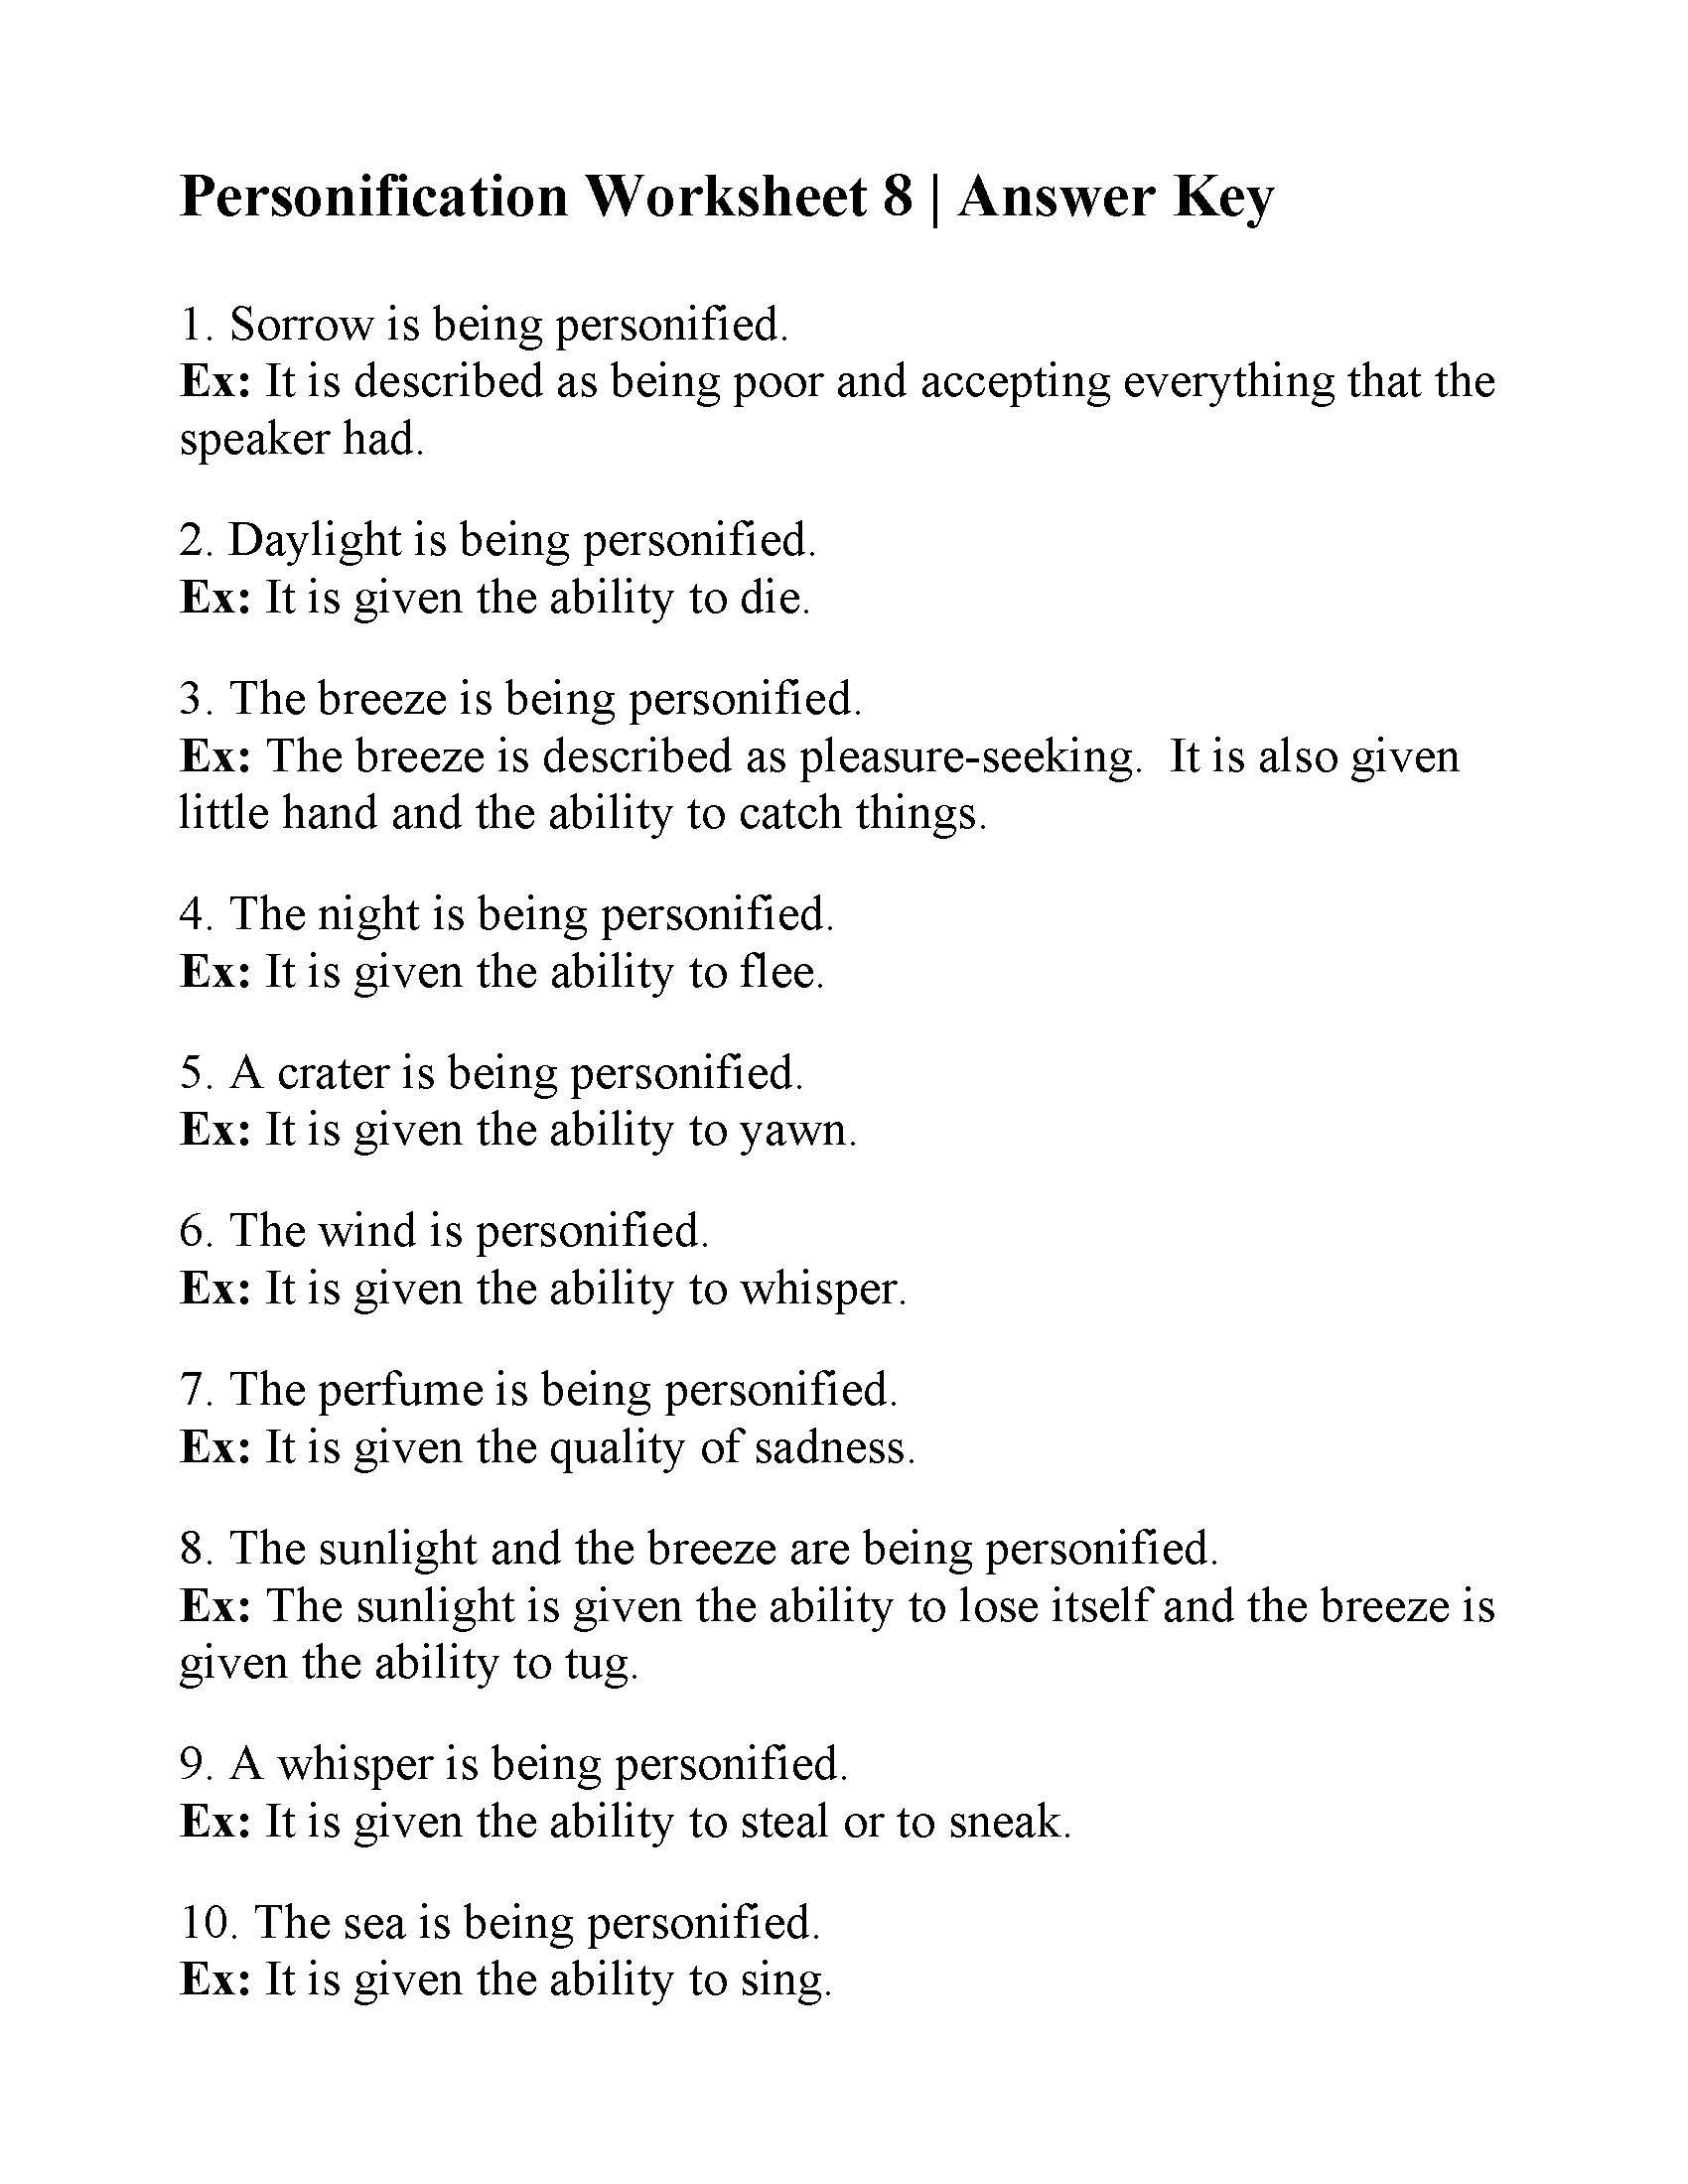 Personification Worksheet Answers Personification Worksheet 8